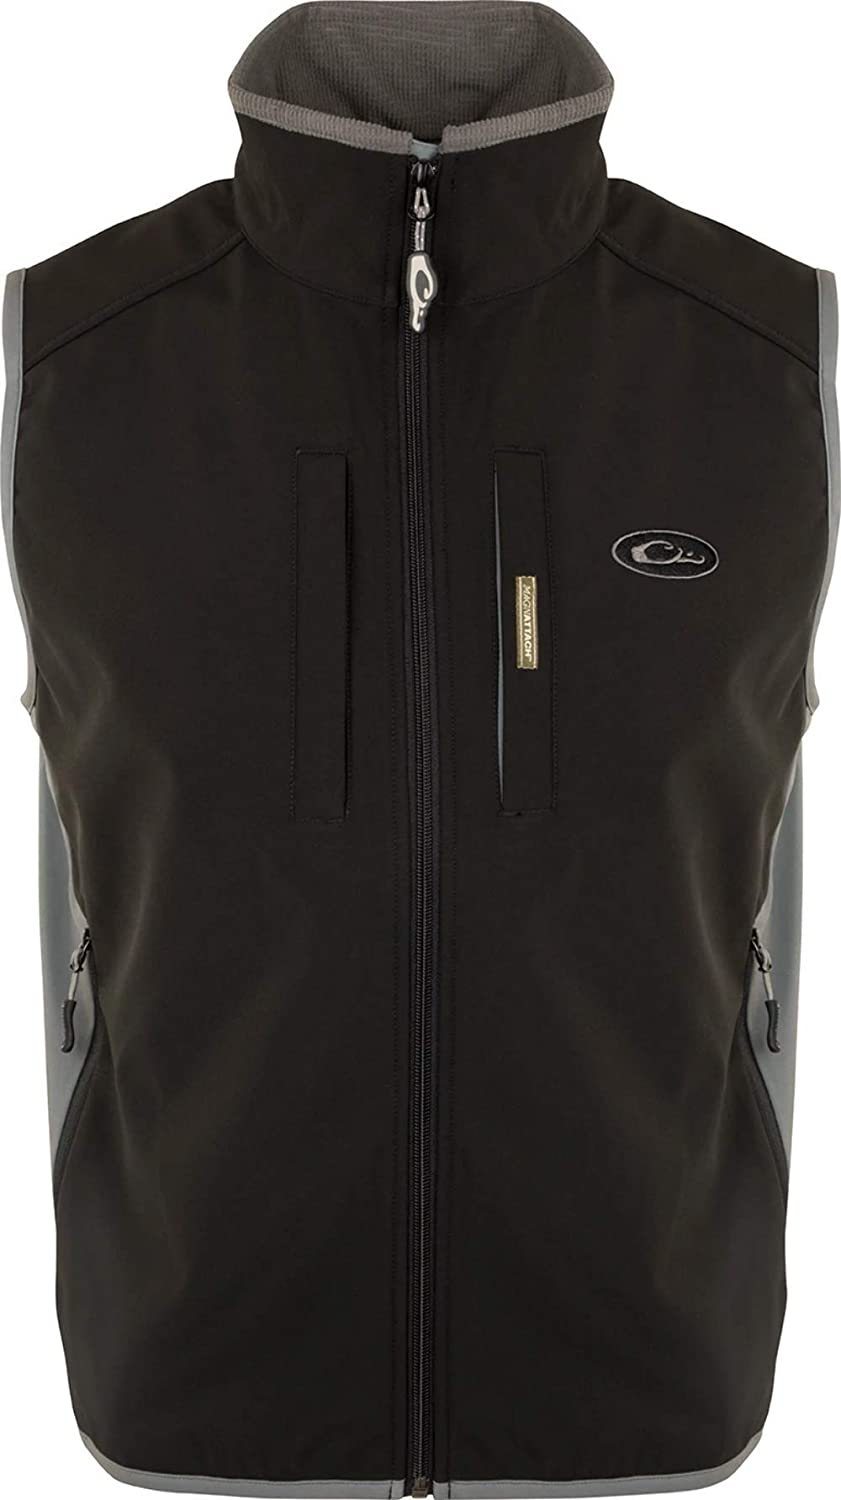 Windproof Tech Vest Black Charcoal Cheap Special price SALE Start Large